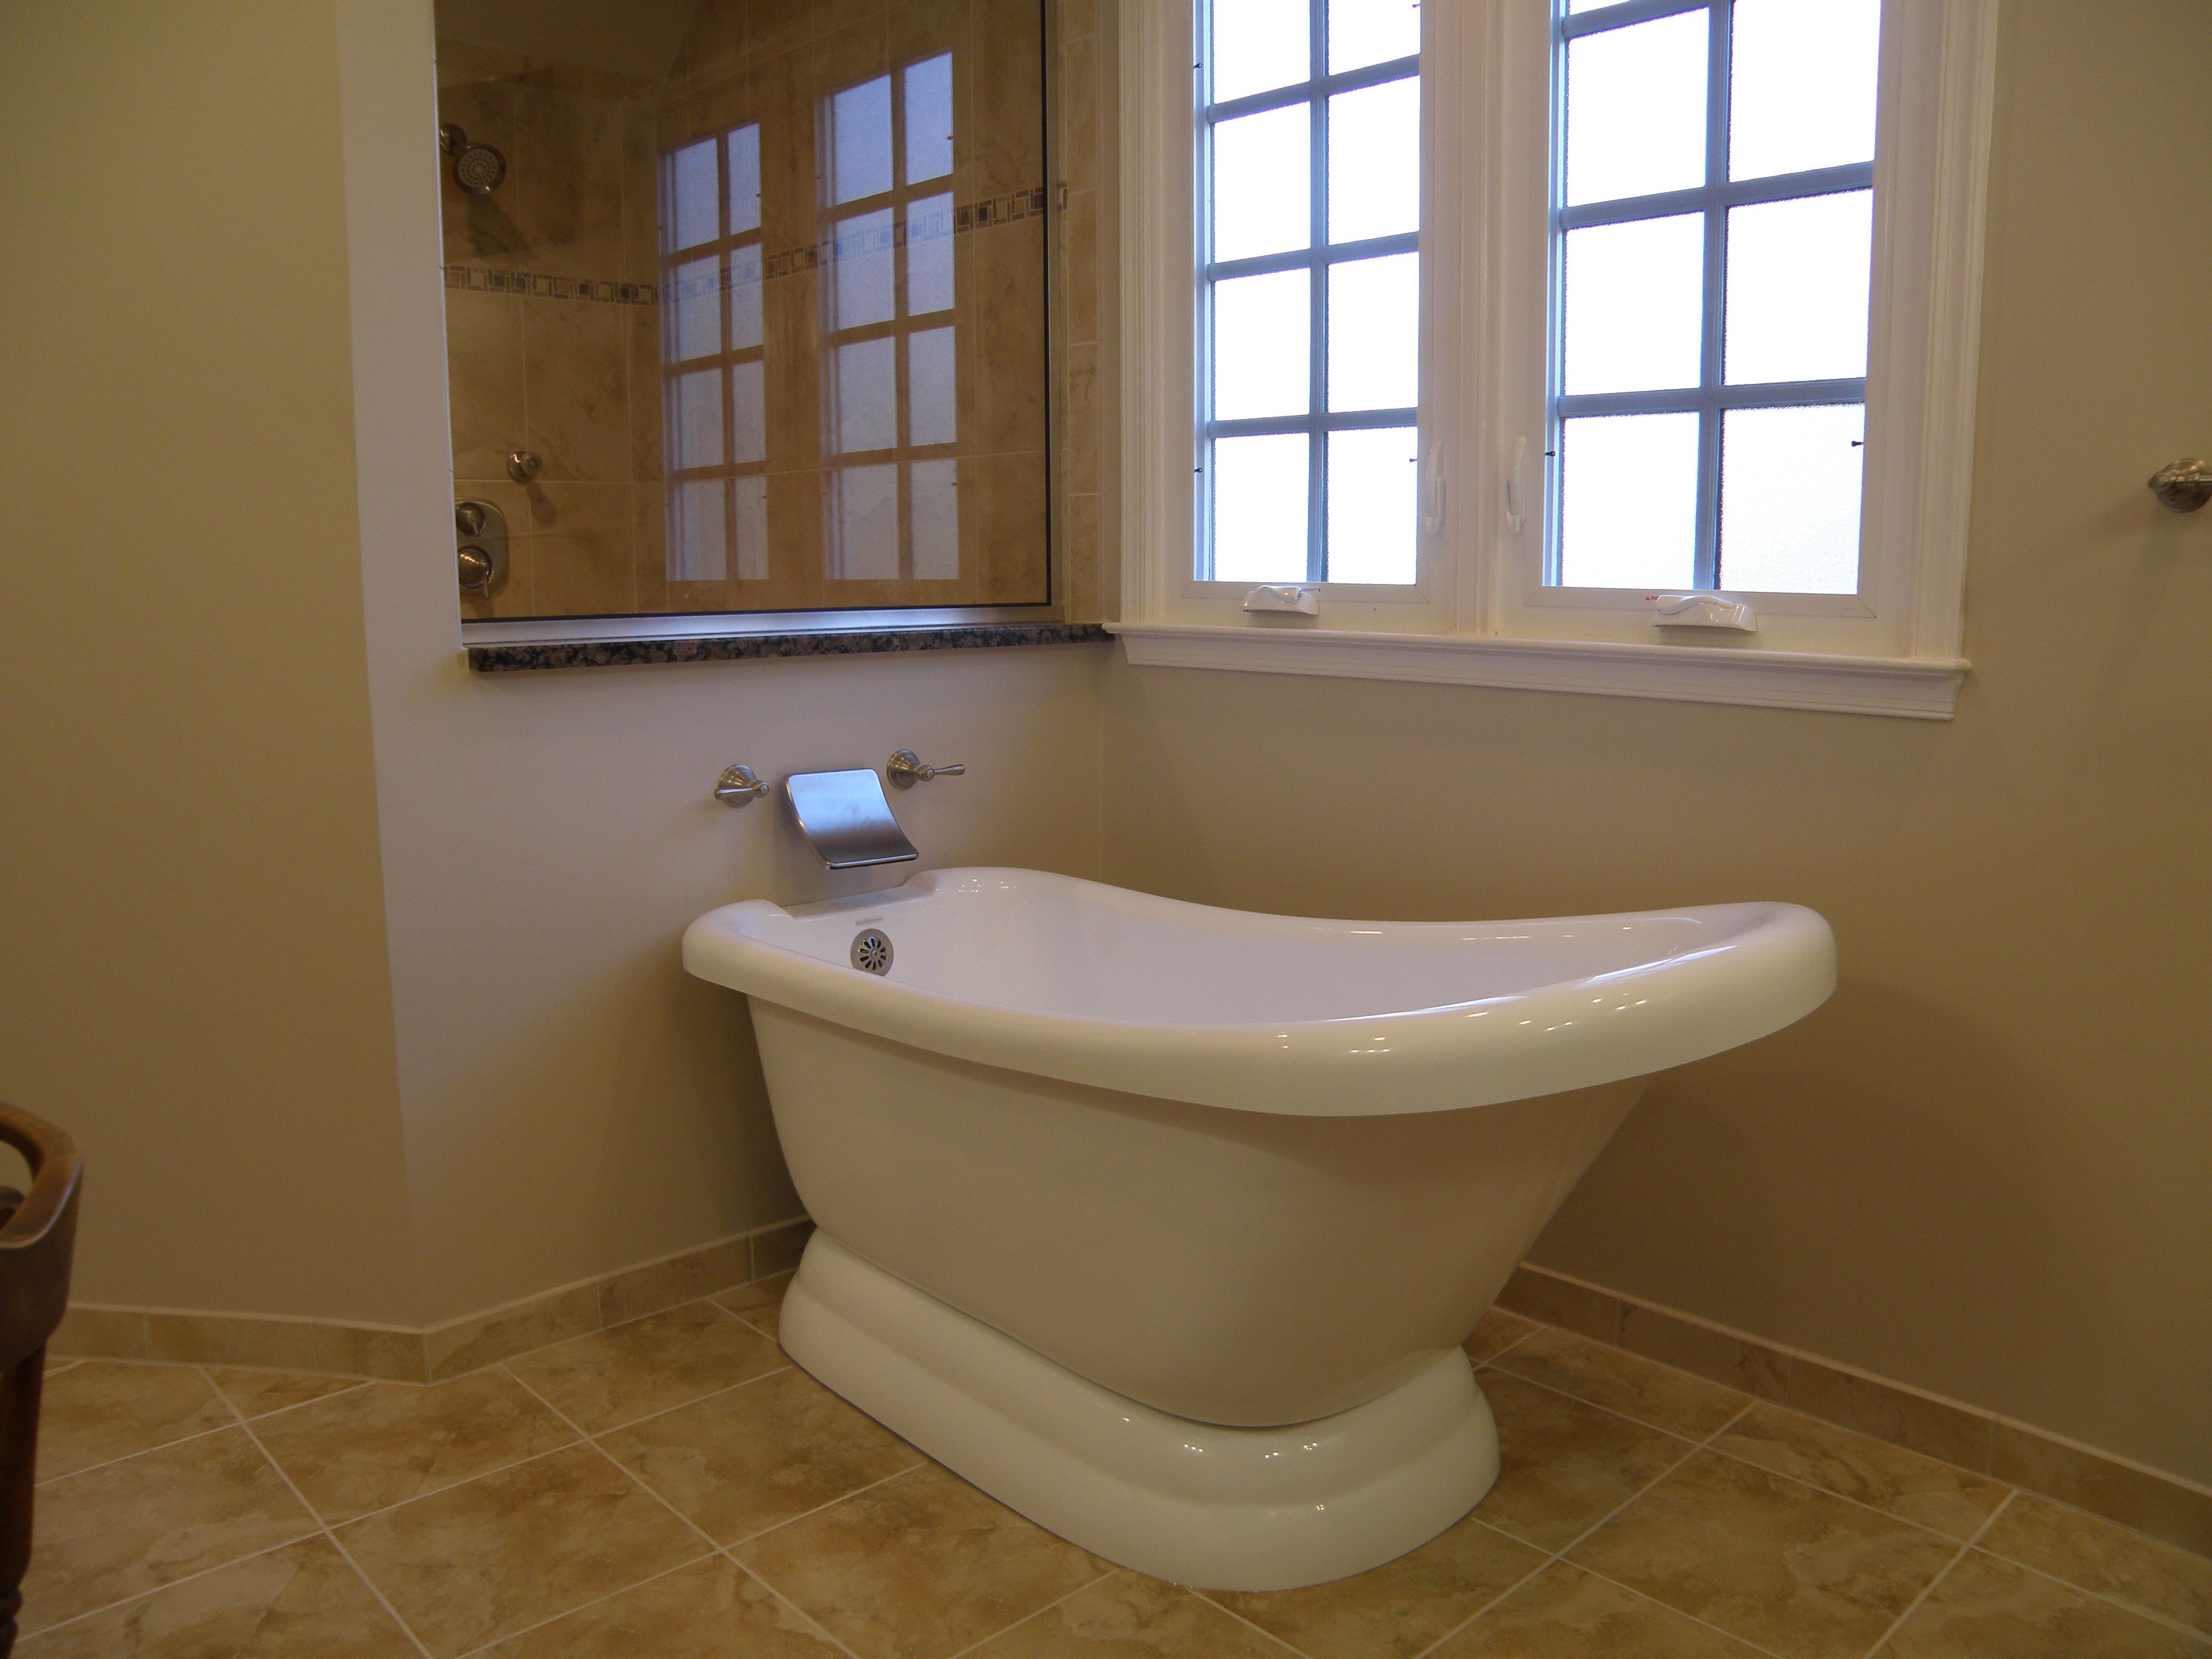 free standing tubs   Free-standing tub - don\'t like the waterfall ...